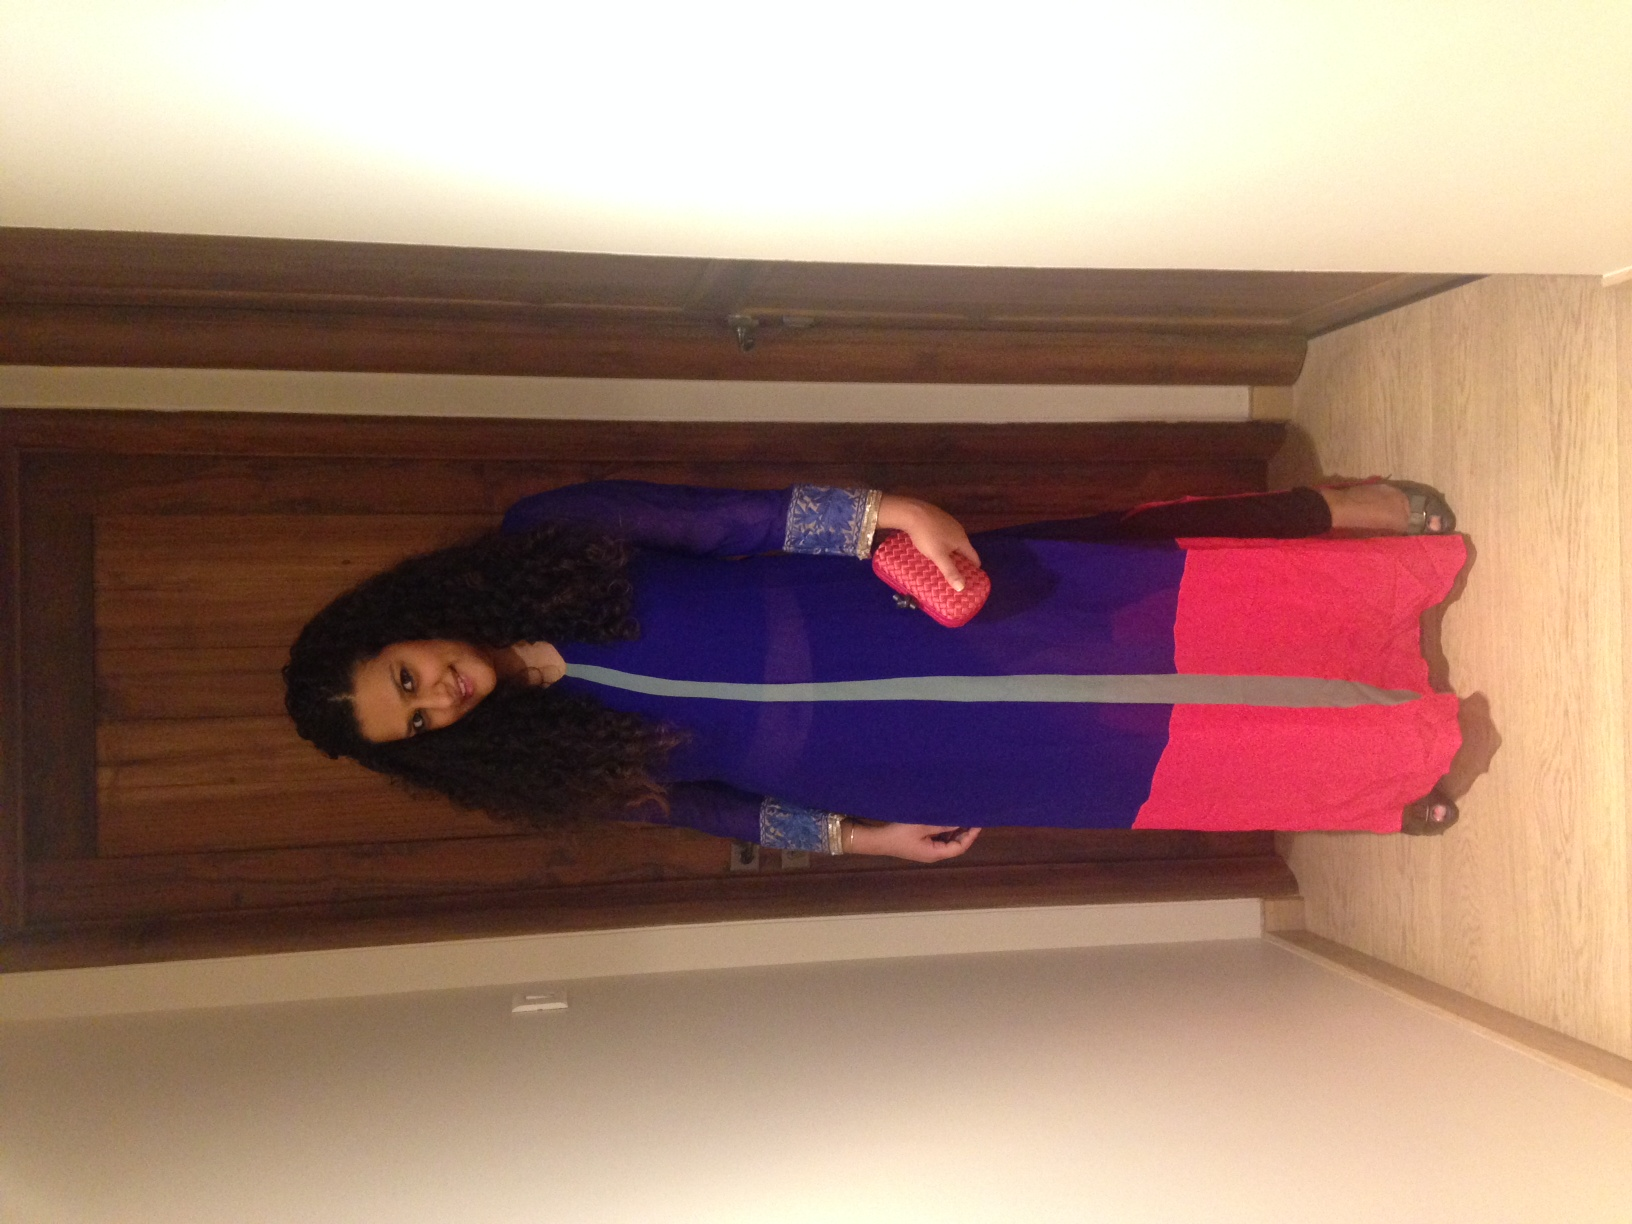 Tunic - Manish Malhotra, Jeans - Gold Sign, Clutch - Bottega Veneta, Shoes - Salvatore Ferrgamo